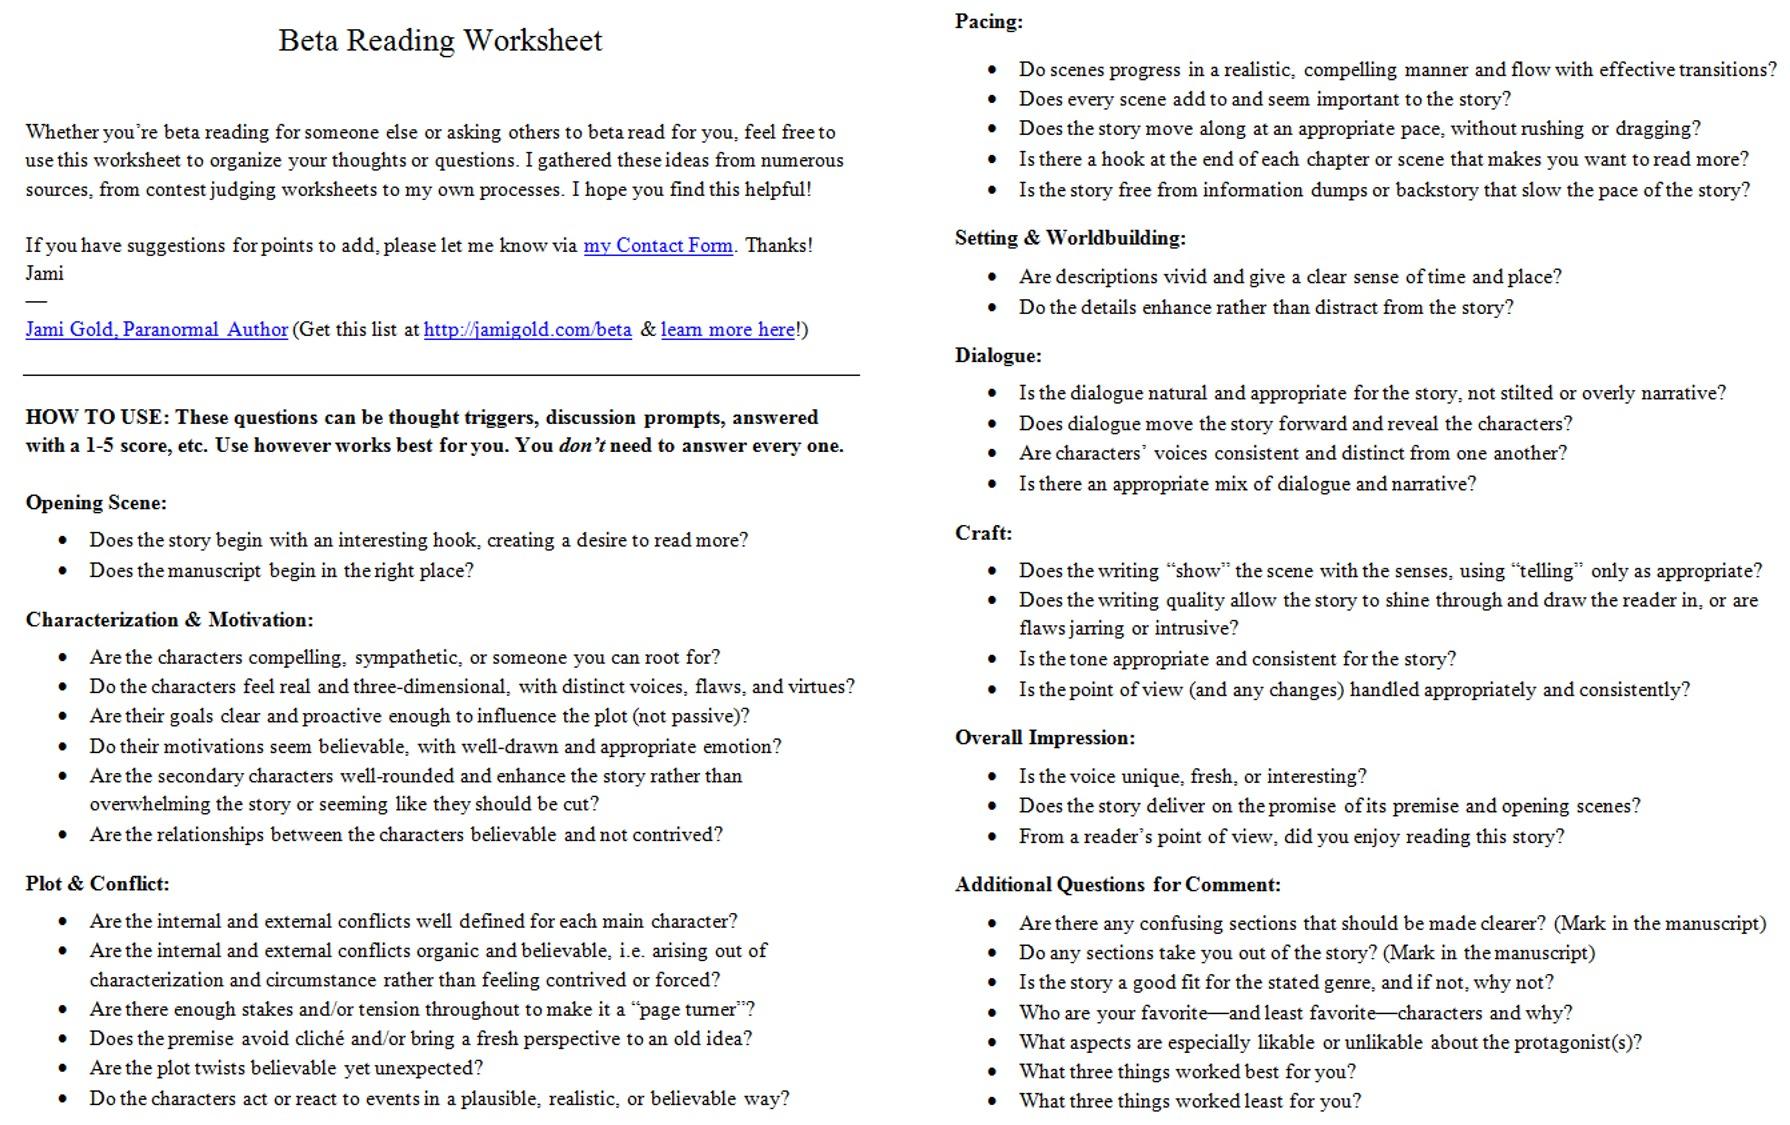 Proatmealus  Surprising Worksheets For Writers  Jami Gold Paranormal Author With Exciting Screen Shot Of The Twopage Beta Reading Worksheet With Astounding Worksheets For Grade  Science Also Comma In A Series Worksheets In Addition English Grammar Worksheet For Class  And  Times Tables Worksheet As Well As Worksheets For Lkg Additionally Preschool Learning Worksheets Free From Jamigoldcom With Proatmealus  Exciting Worksheets For Writers  Jami Gold Paranormal Author With Astounding Screen Shot Of The Twopage Beta Reading Worksheet And Surprising Worksheets For Grade  Science Also Comma In A Series Worksheets In Addition English Grammar Worksheet For Class  From Jamigoldcom